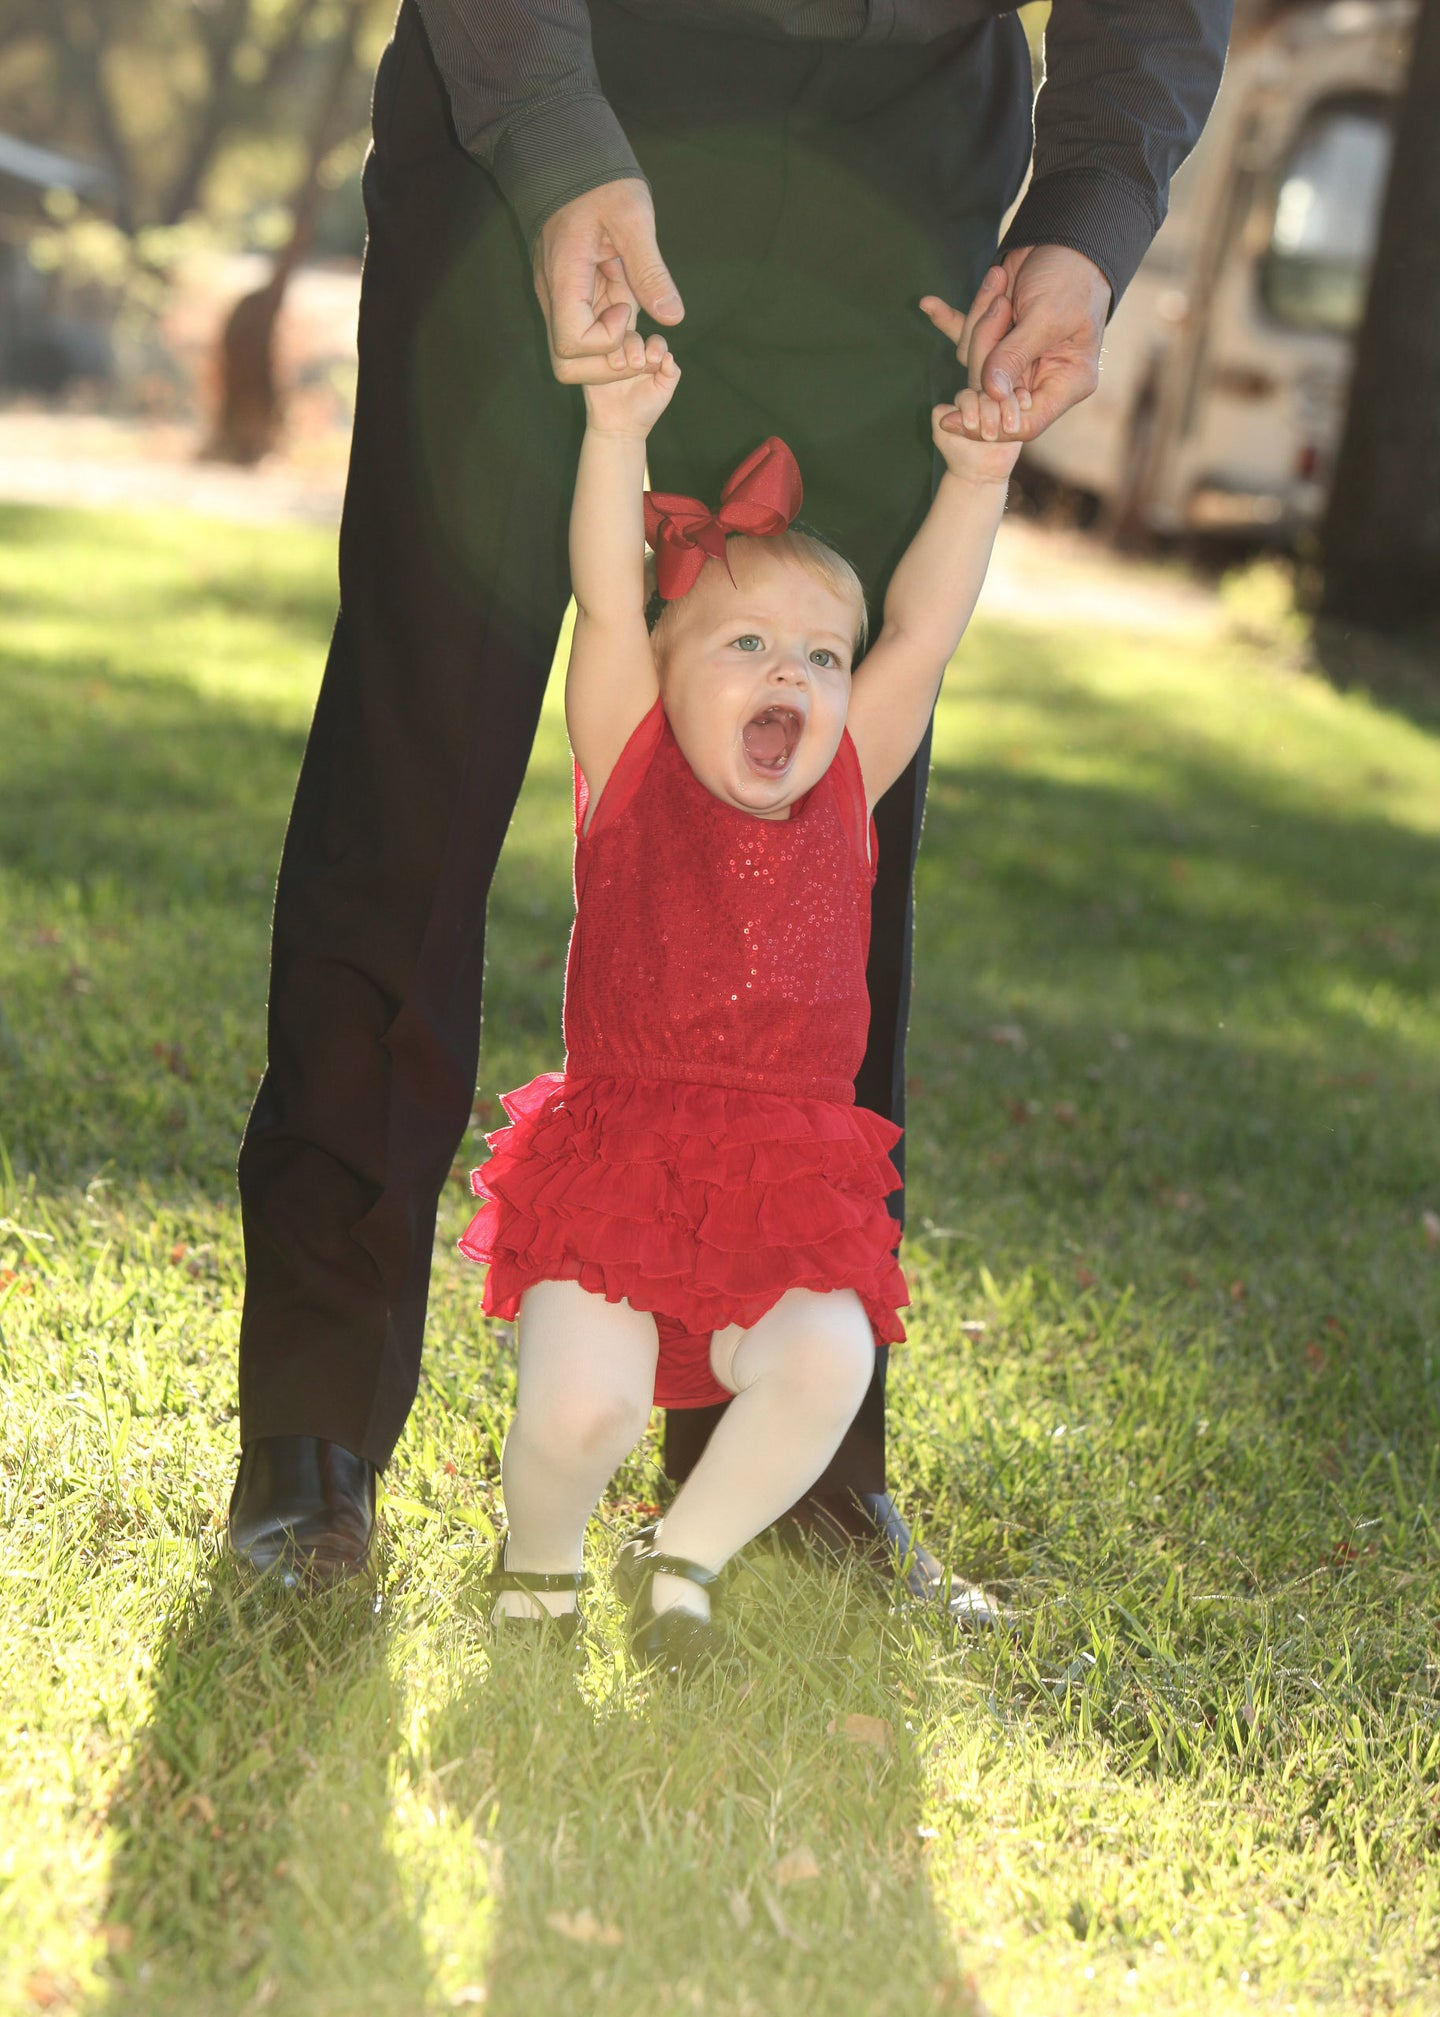 Child Swinging with Father Red Dress